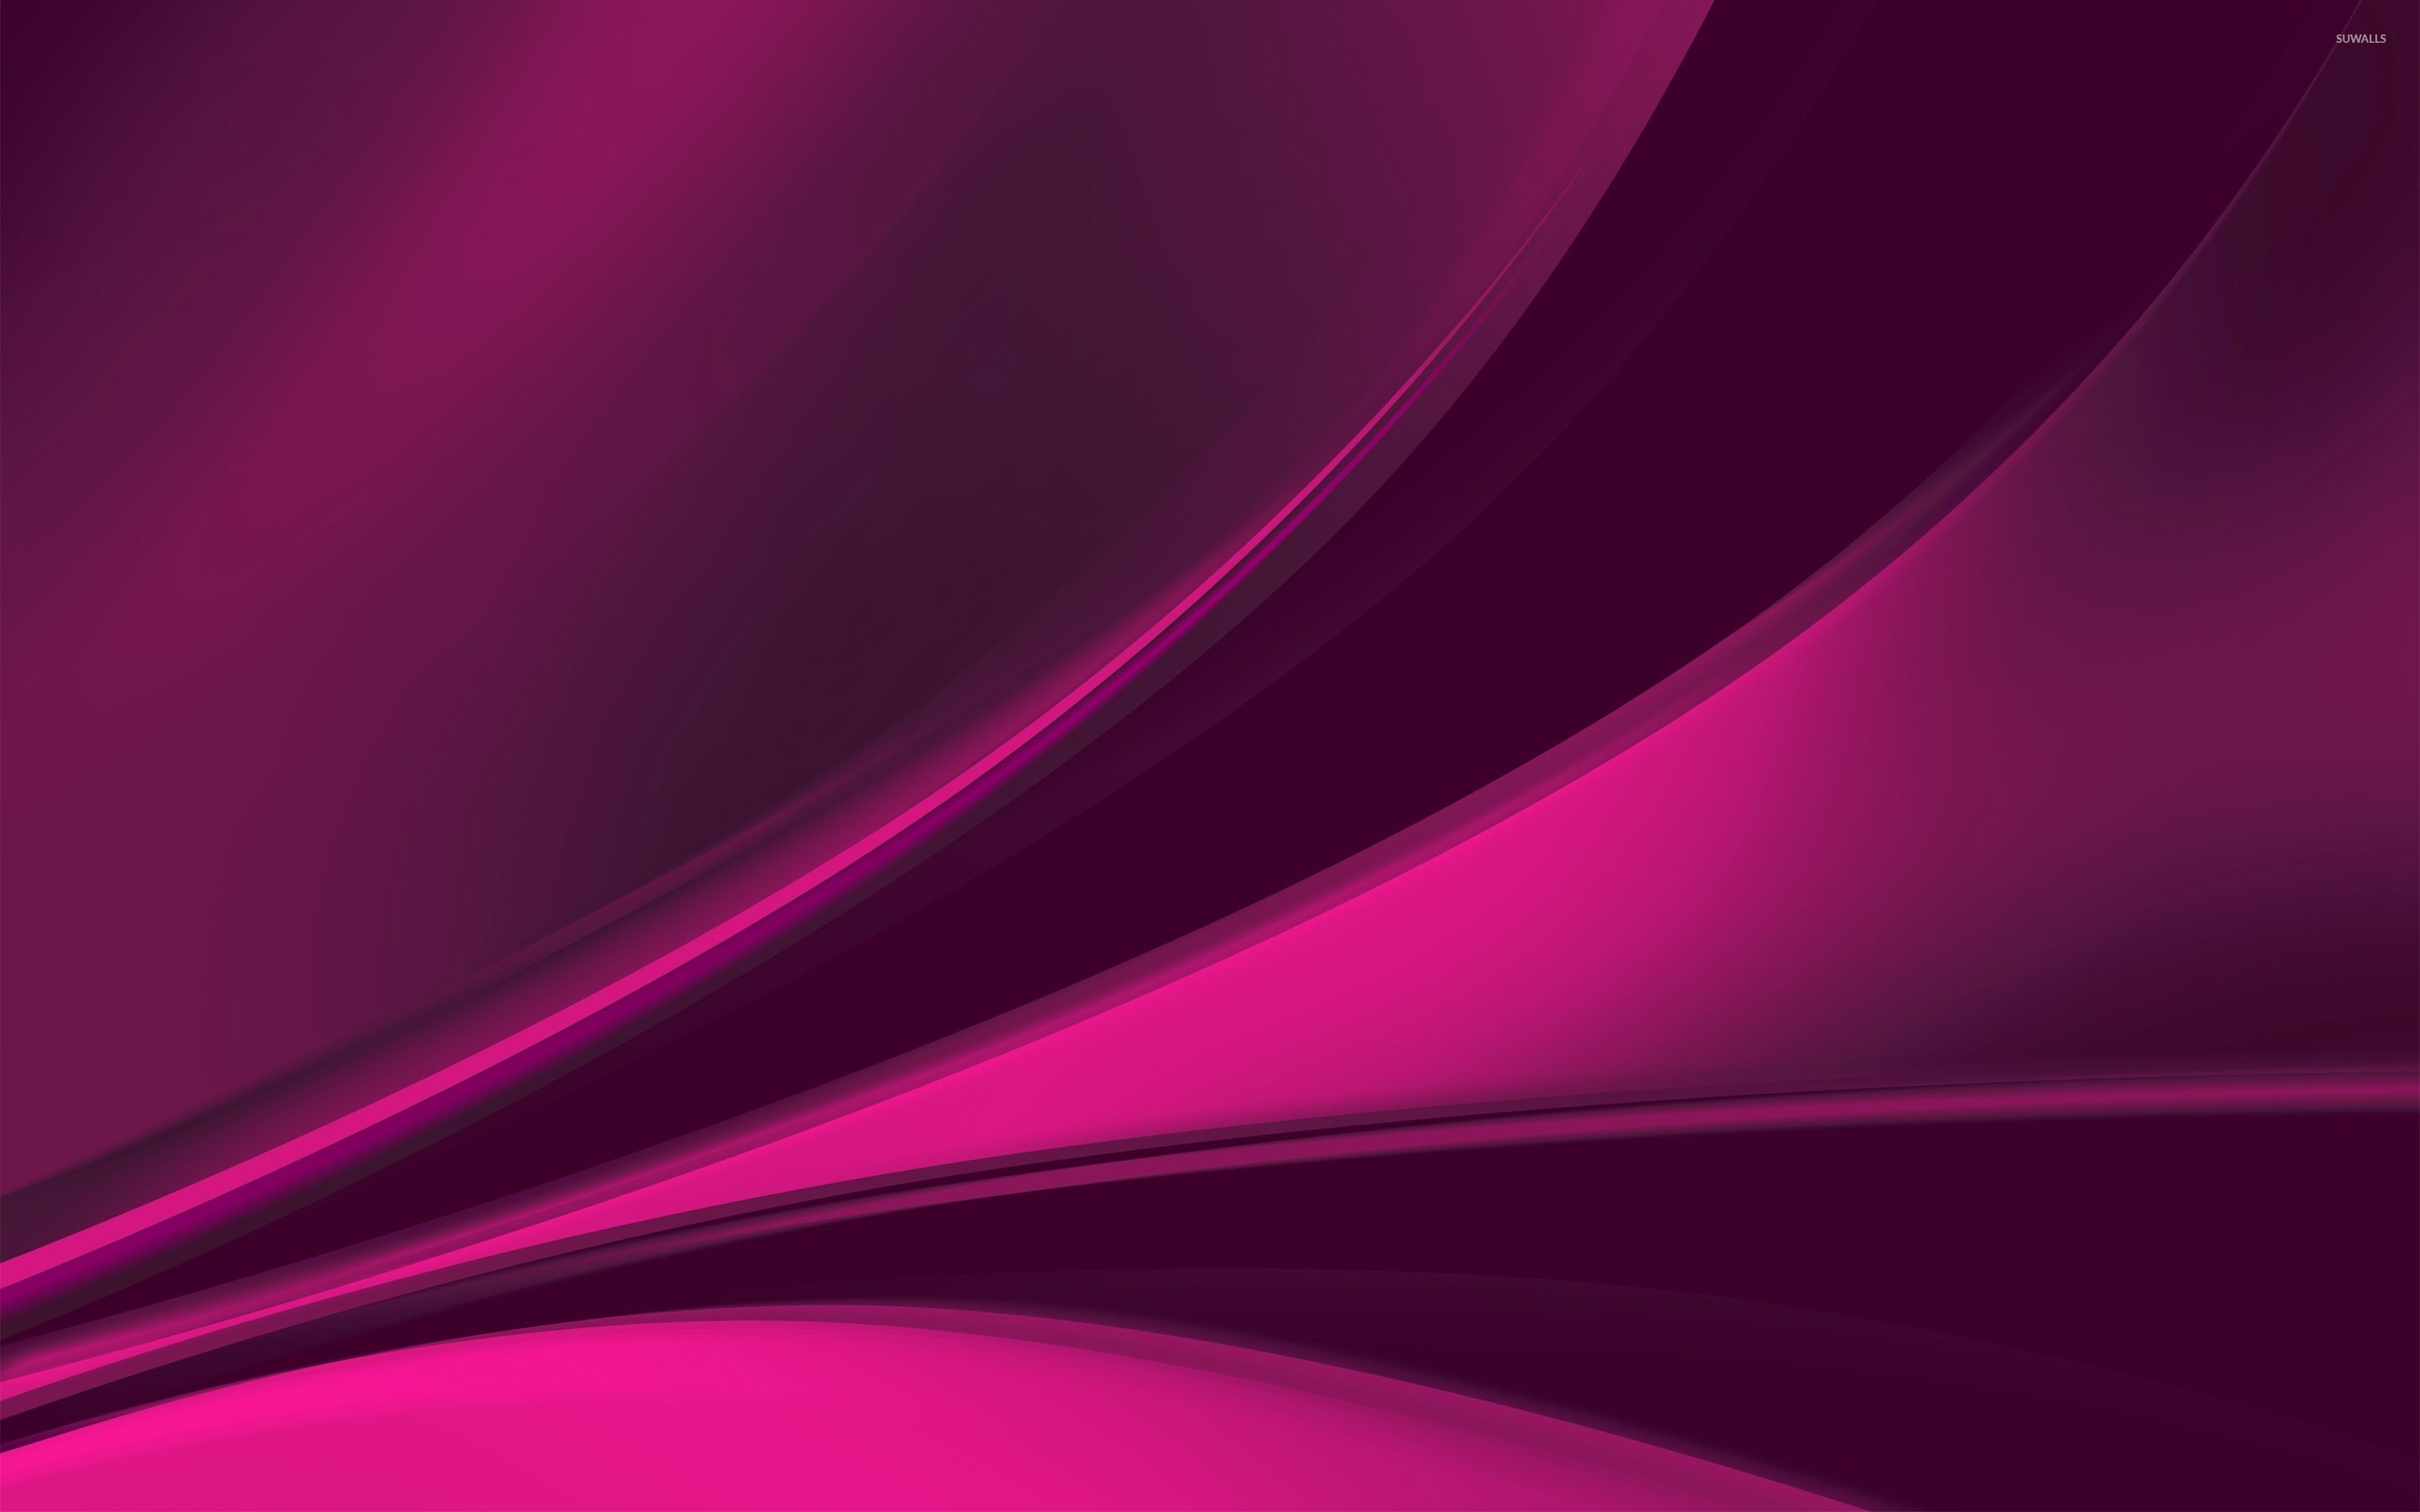 Abstract Purple Background Cloth Or Liquid Wave Illustration ...